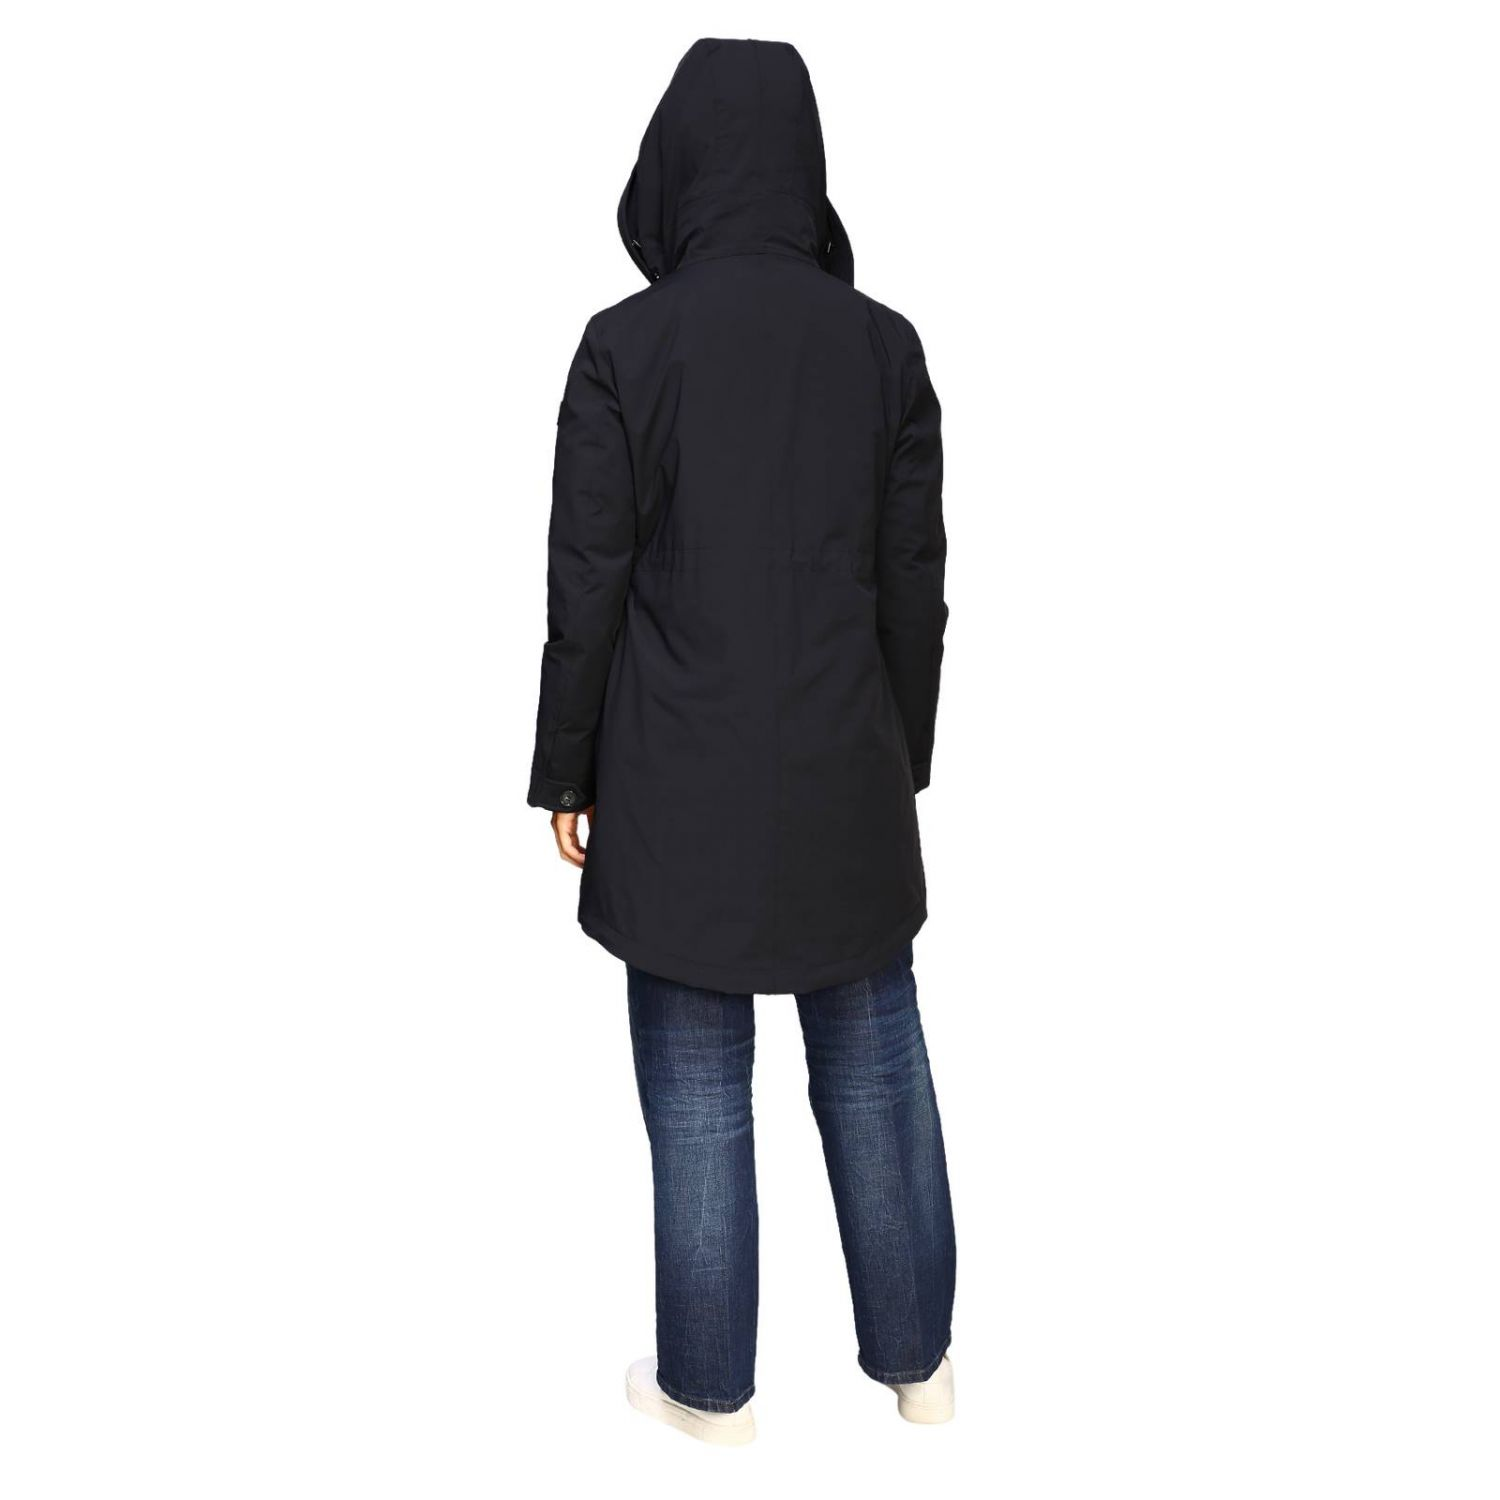 Giacca donna Woolrich nero 3